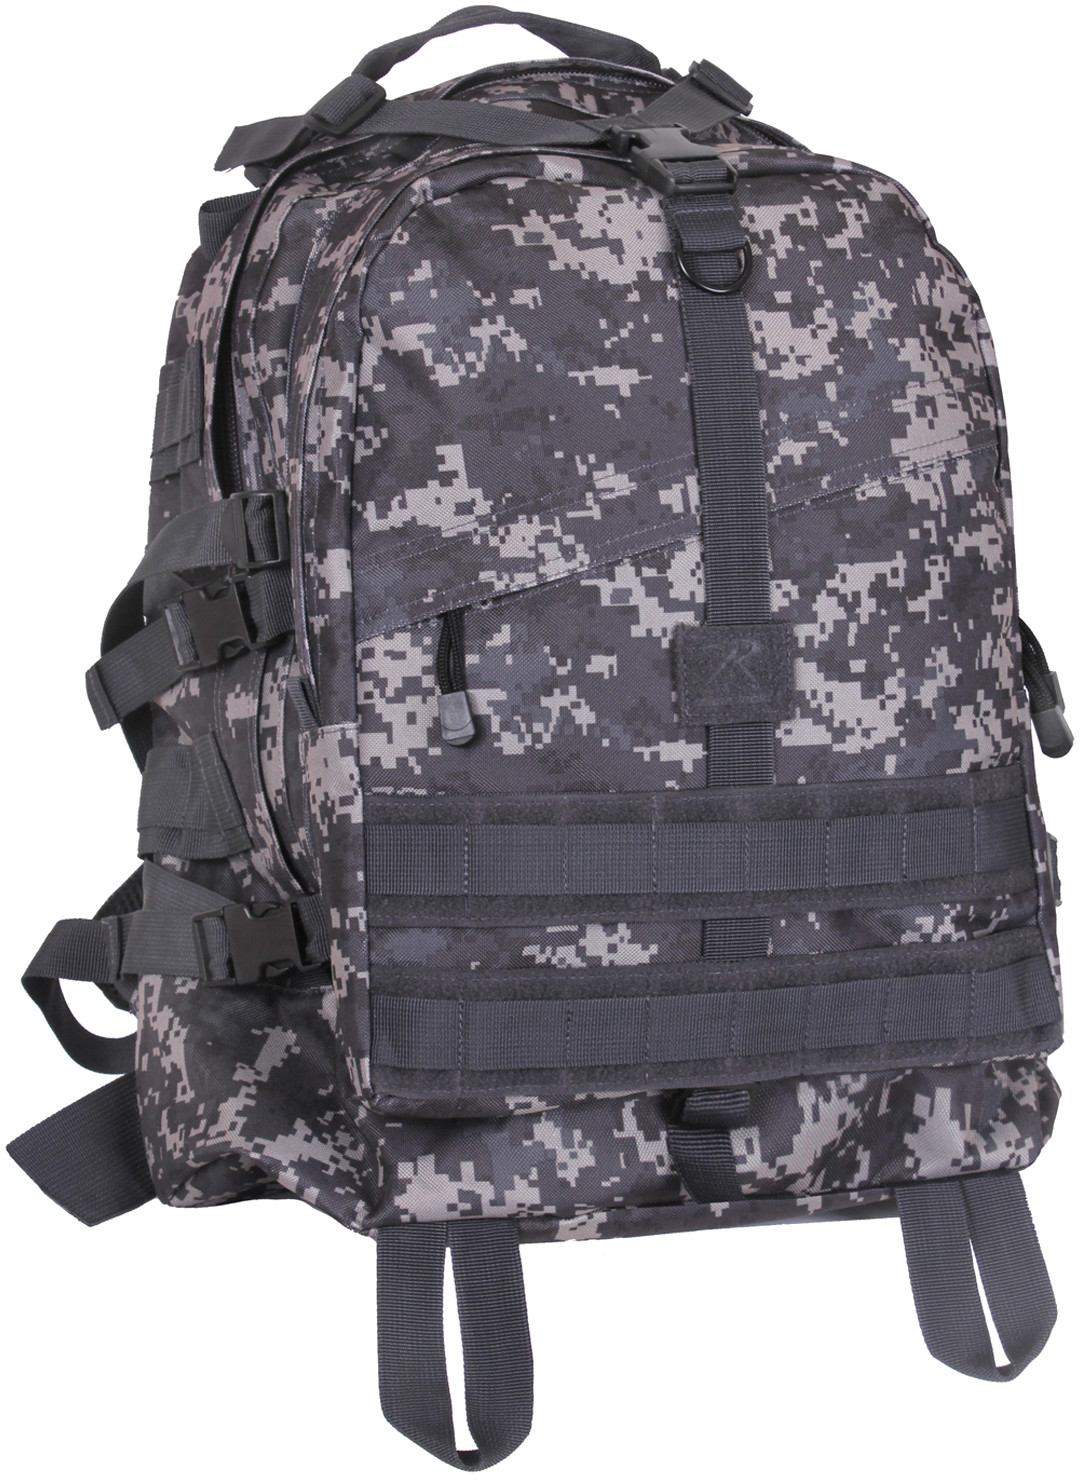 More Views. Subdued Urban Digital Camouflage Military MOLLE Large Transport  Assault Pack Backpack 6442dbc586b